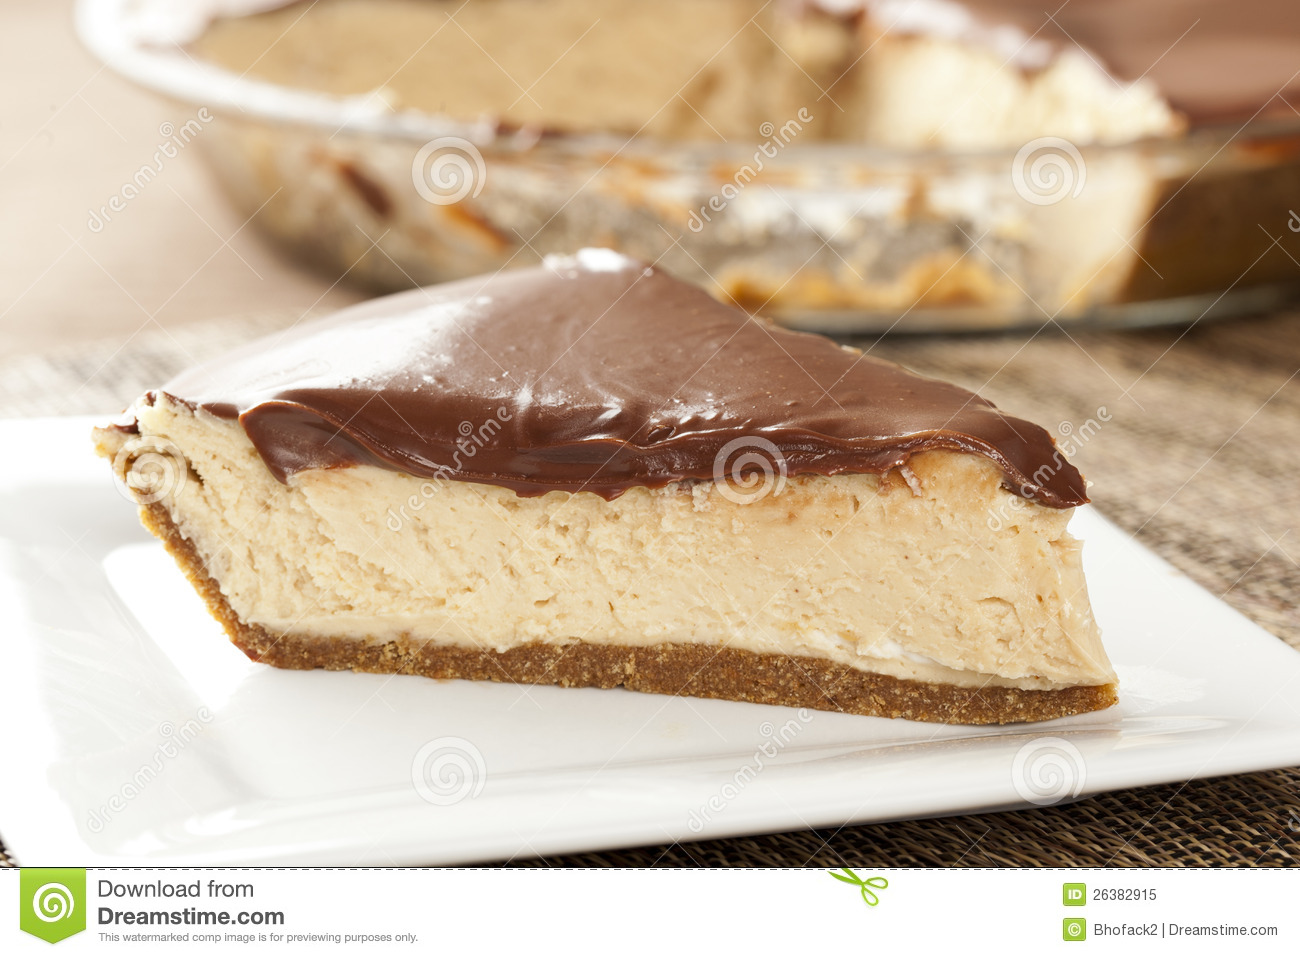 Download Gourmet Peanut Butter Pie stock image. Image of layered - 26382915